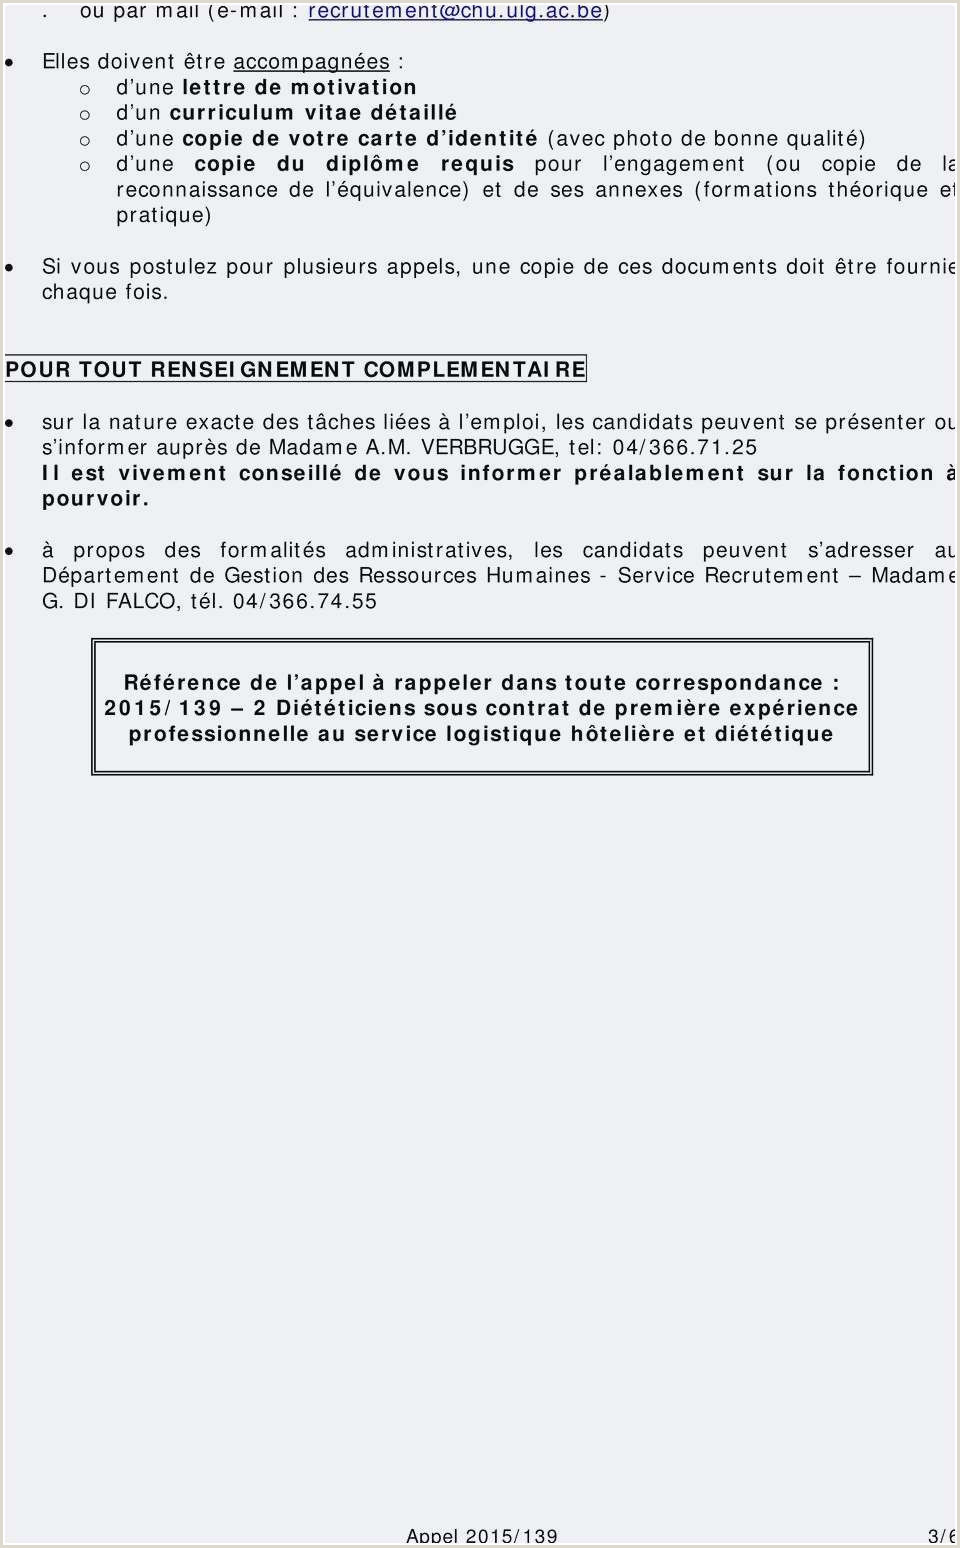 Exemple De Cv Receptionniste Hotel Exemple Cv Cuisinier Fv3 Le Meilleur De Lettre Motivation